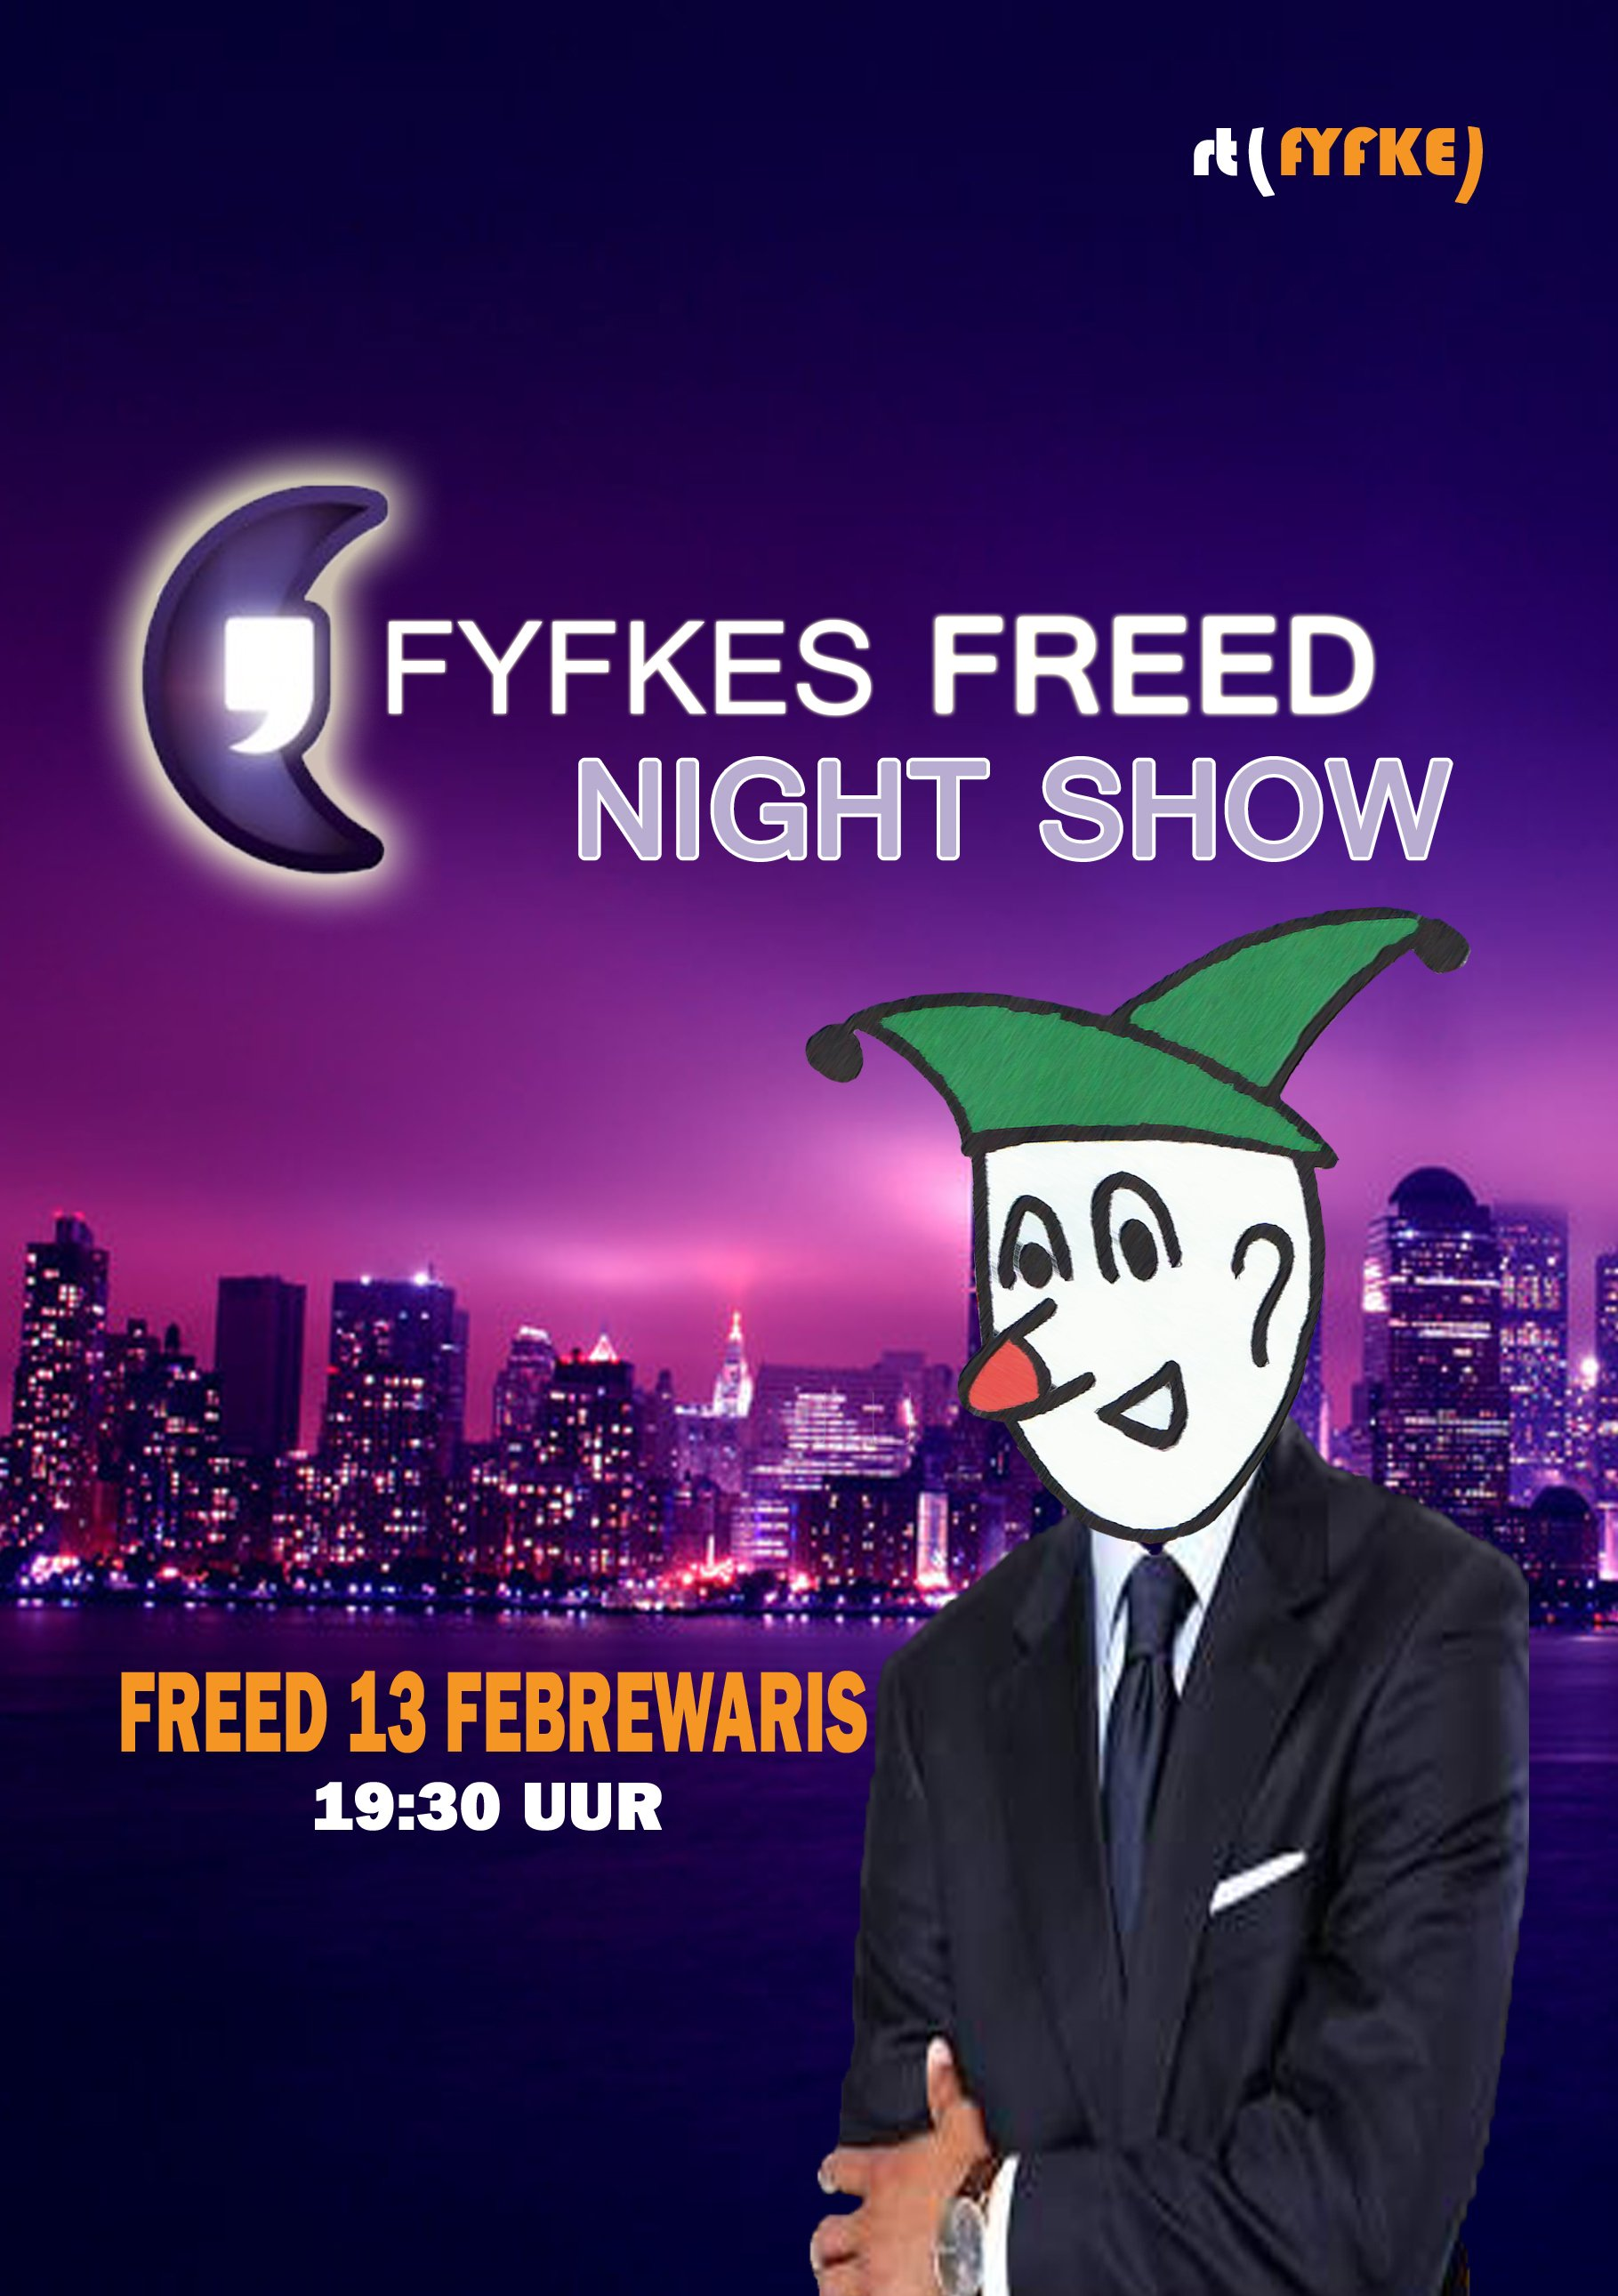 Fyfkes Freed Night Show